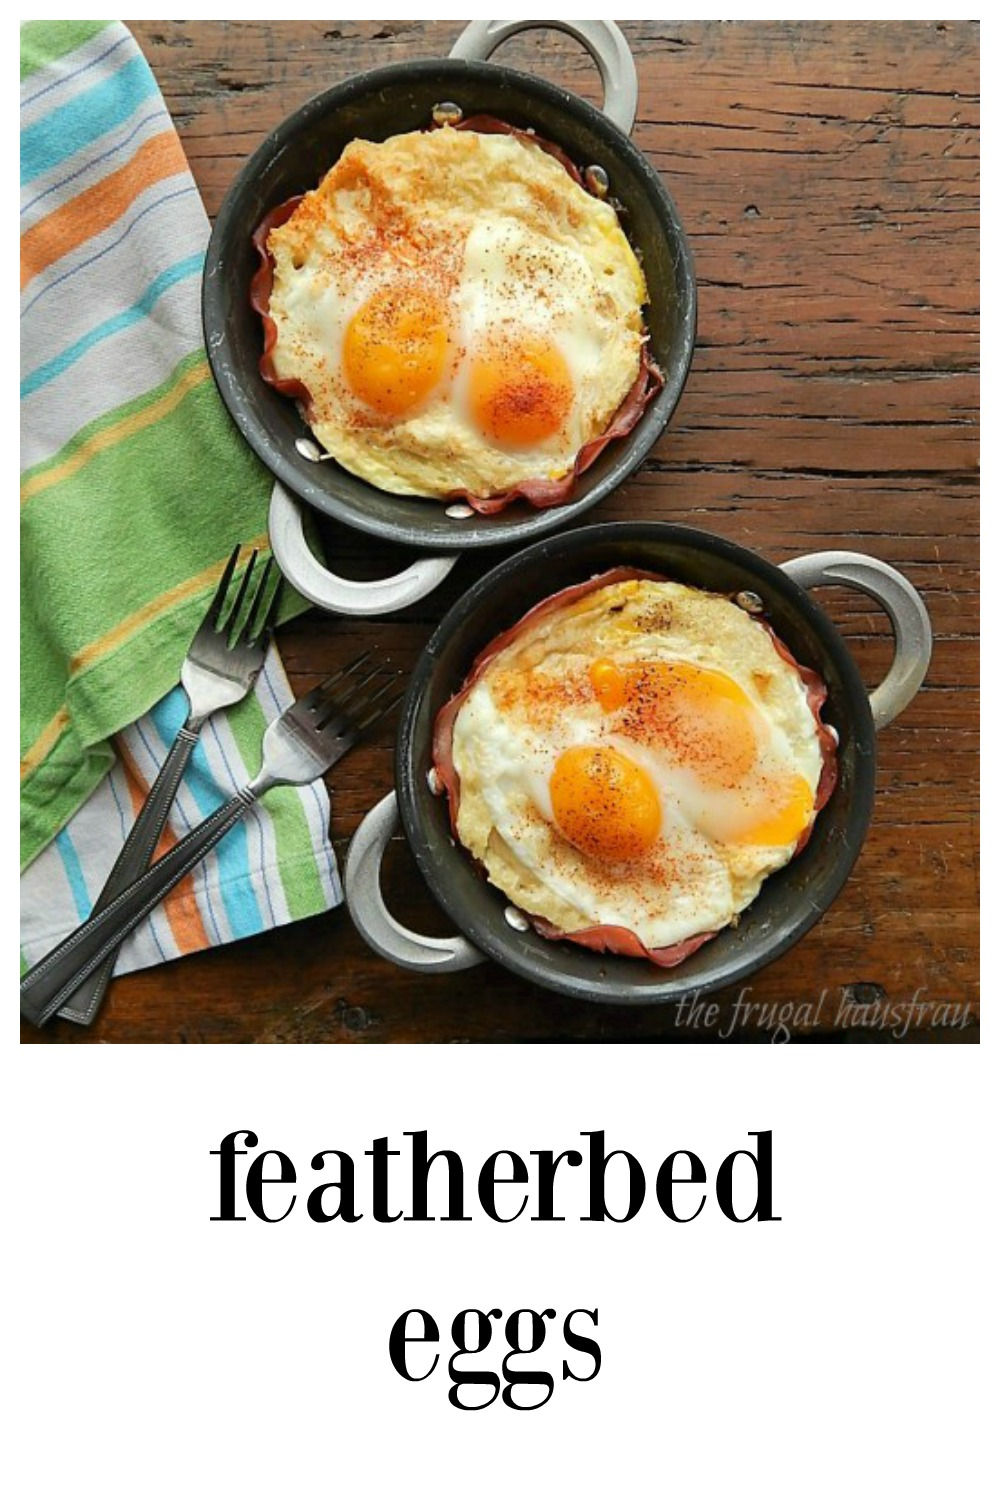 Eggs nestled over a savory, custard soaked bread layered over ham that bakes up with crispy edges. Insanely good and so simple to make single or casserole. #FeatherbedEggs #SavoryFrenchToastEggs #BakedEggs #Brunchdish